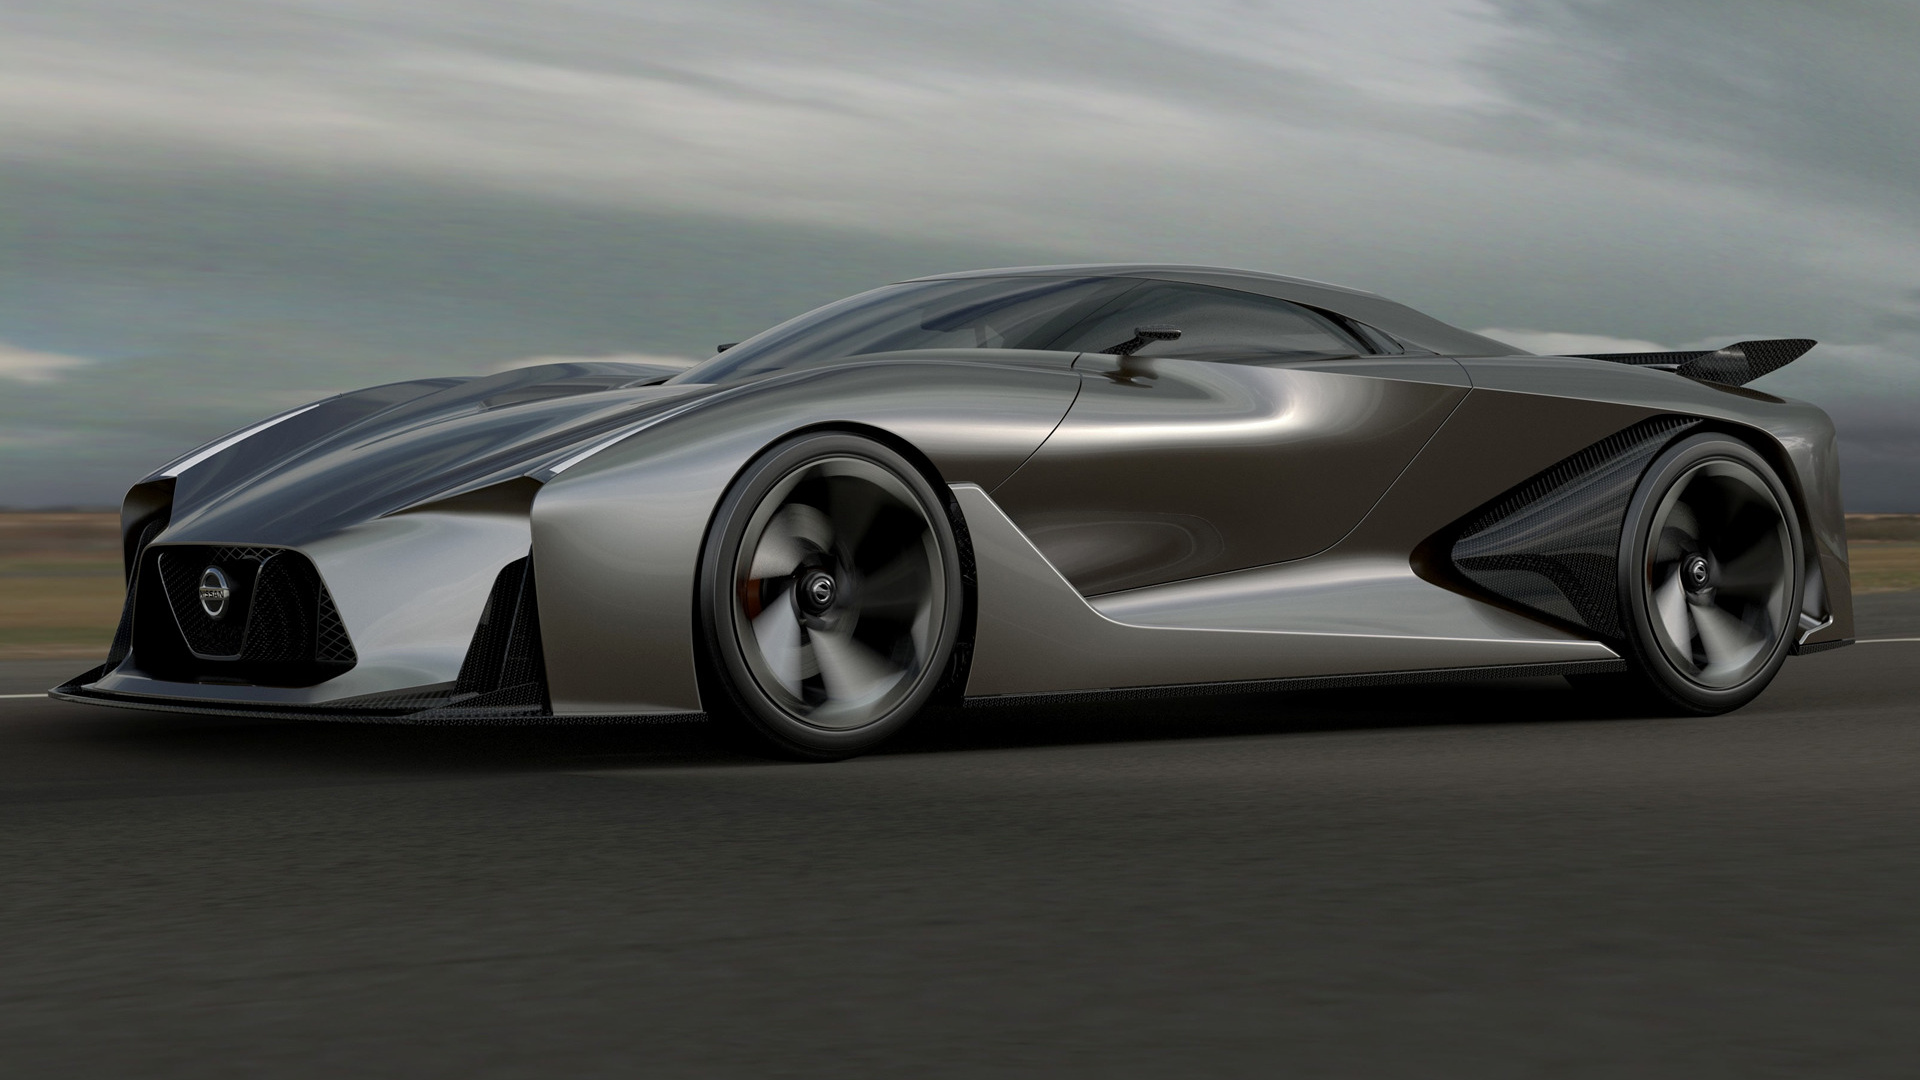 2014 Nissan Concept 2020 Vision Gran Turismo Wallpapers